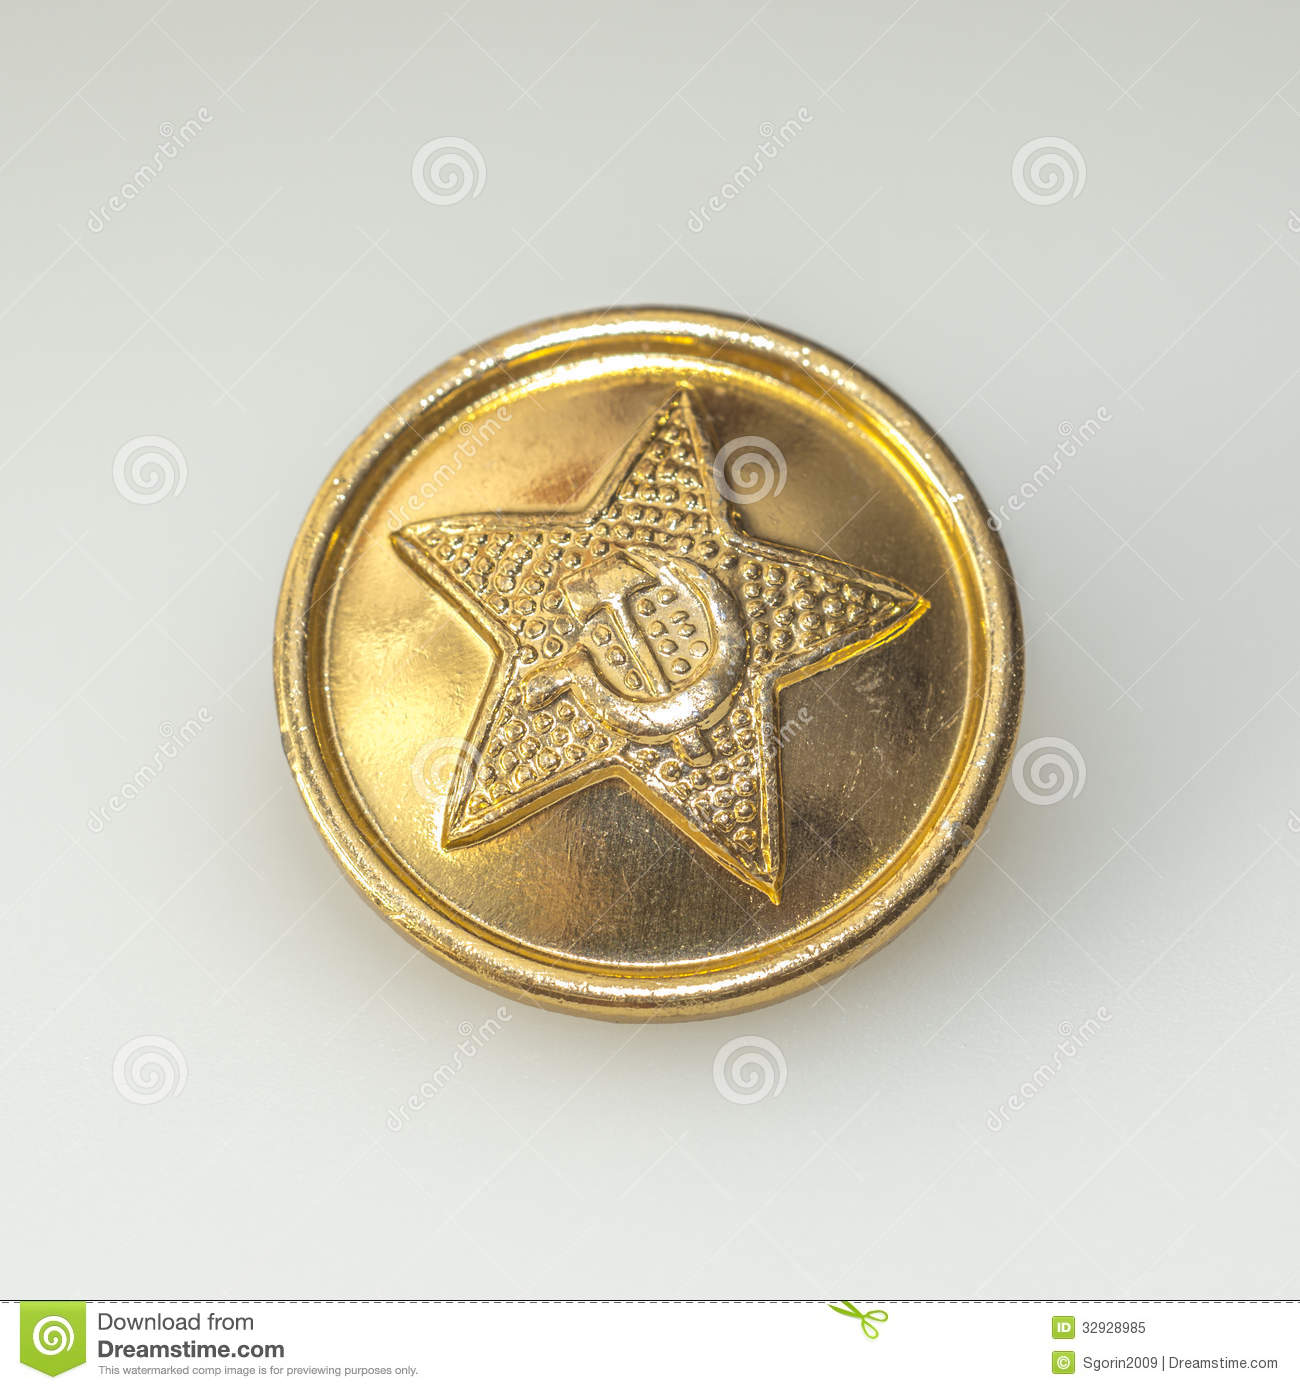 ... button from military uniforms of Soviet army, with the soviet symbols